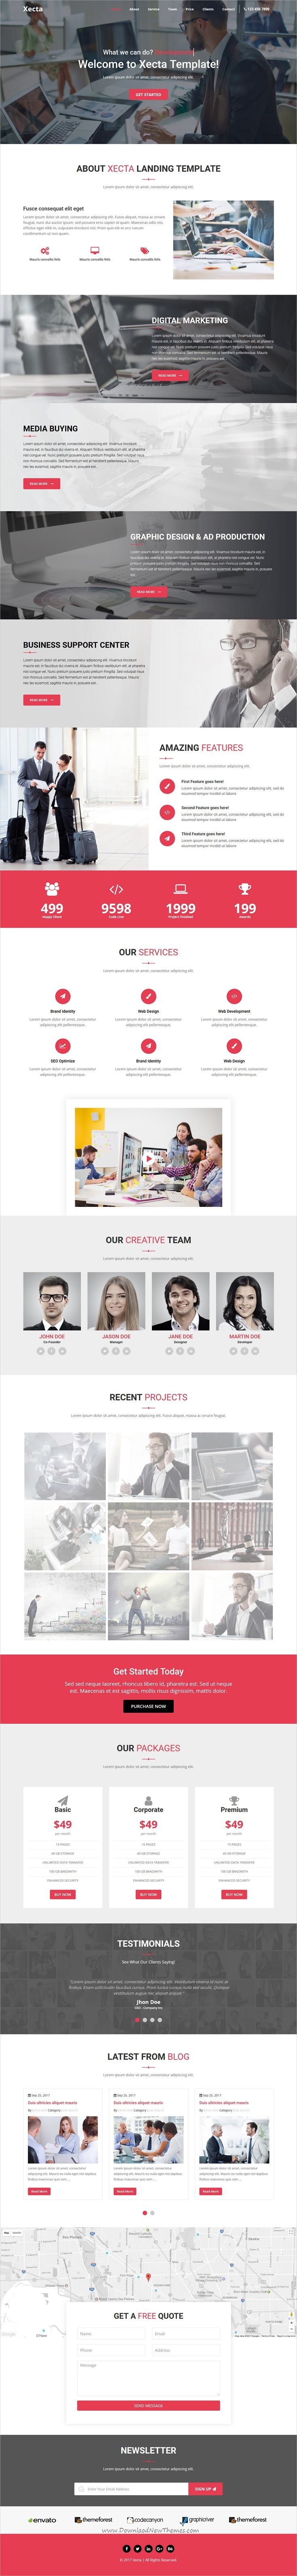 Xecta is clean and modern design responsive #bootstrap template for onepage creative #landingpage website download now..